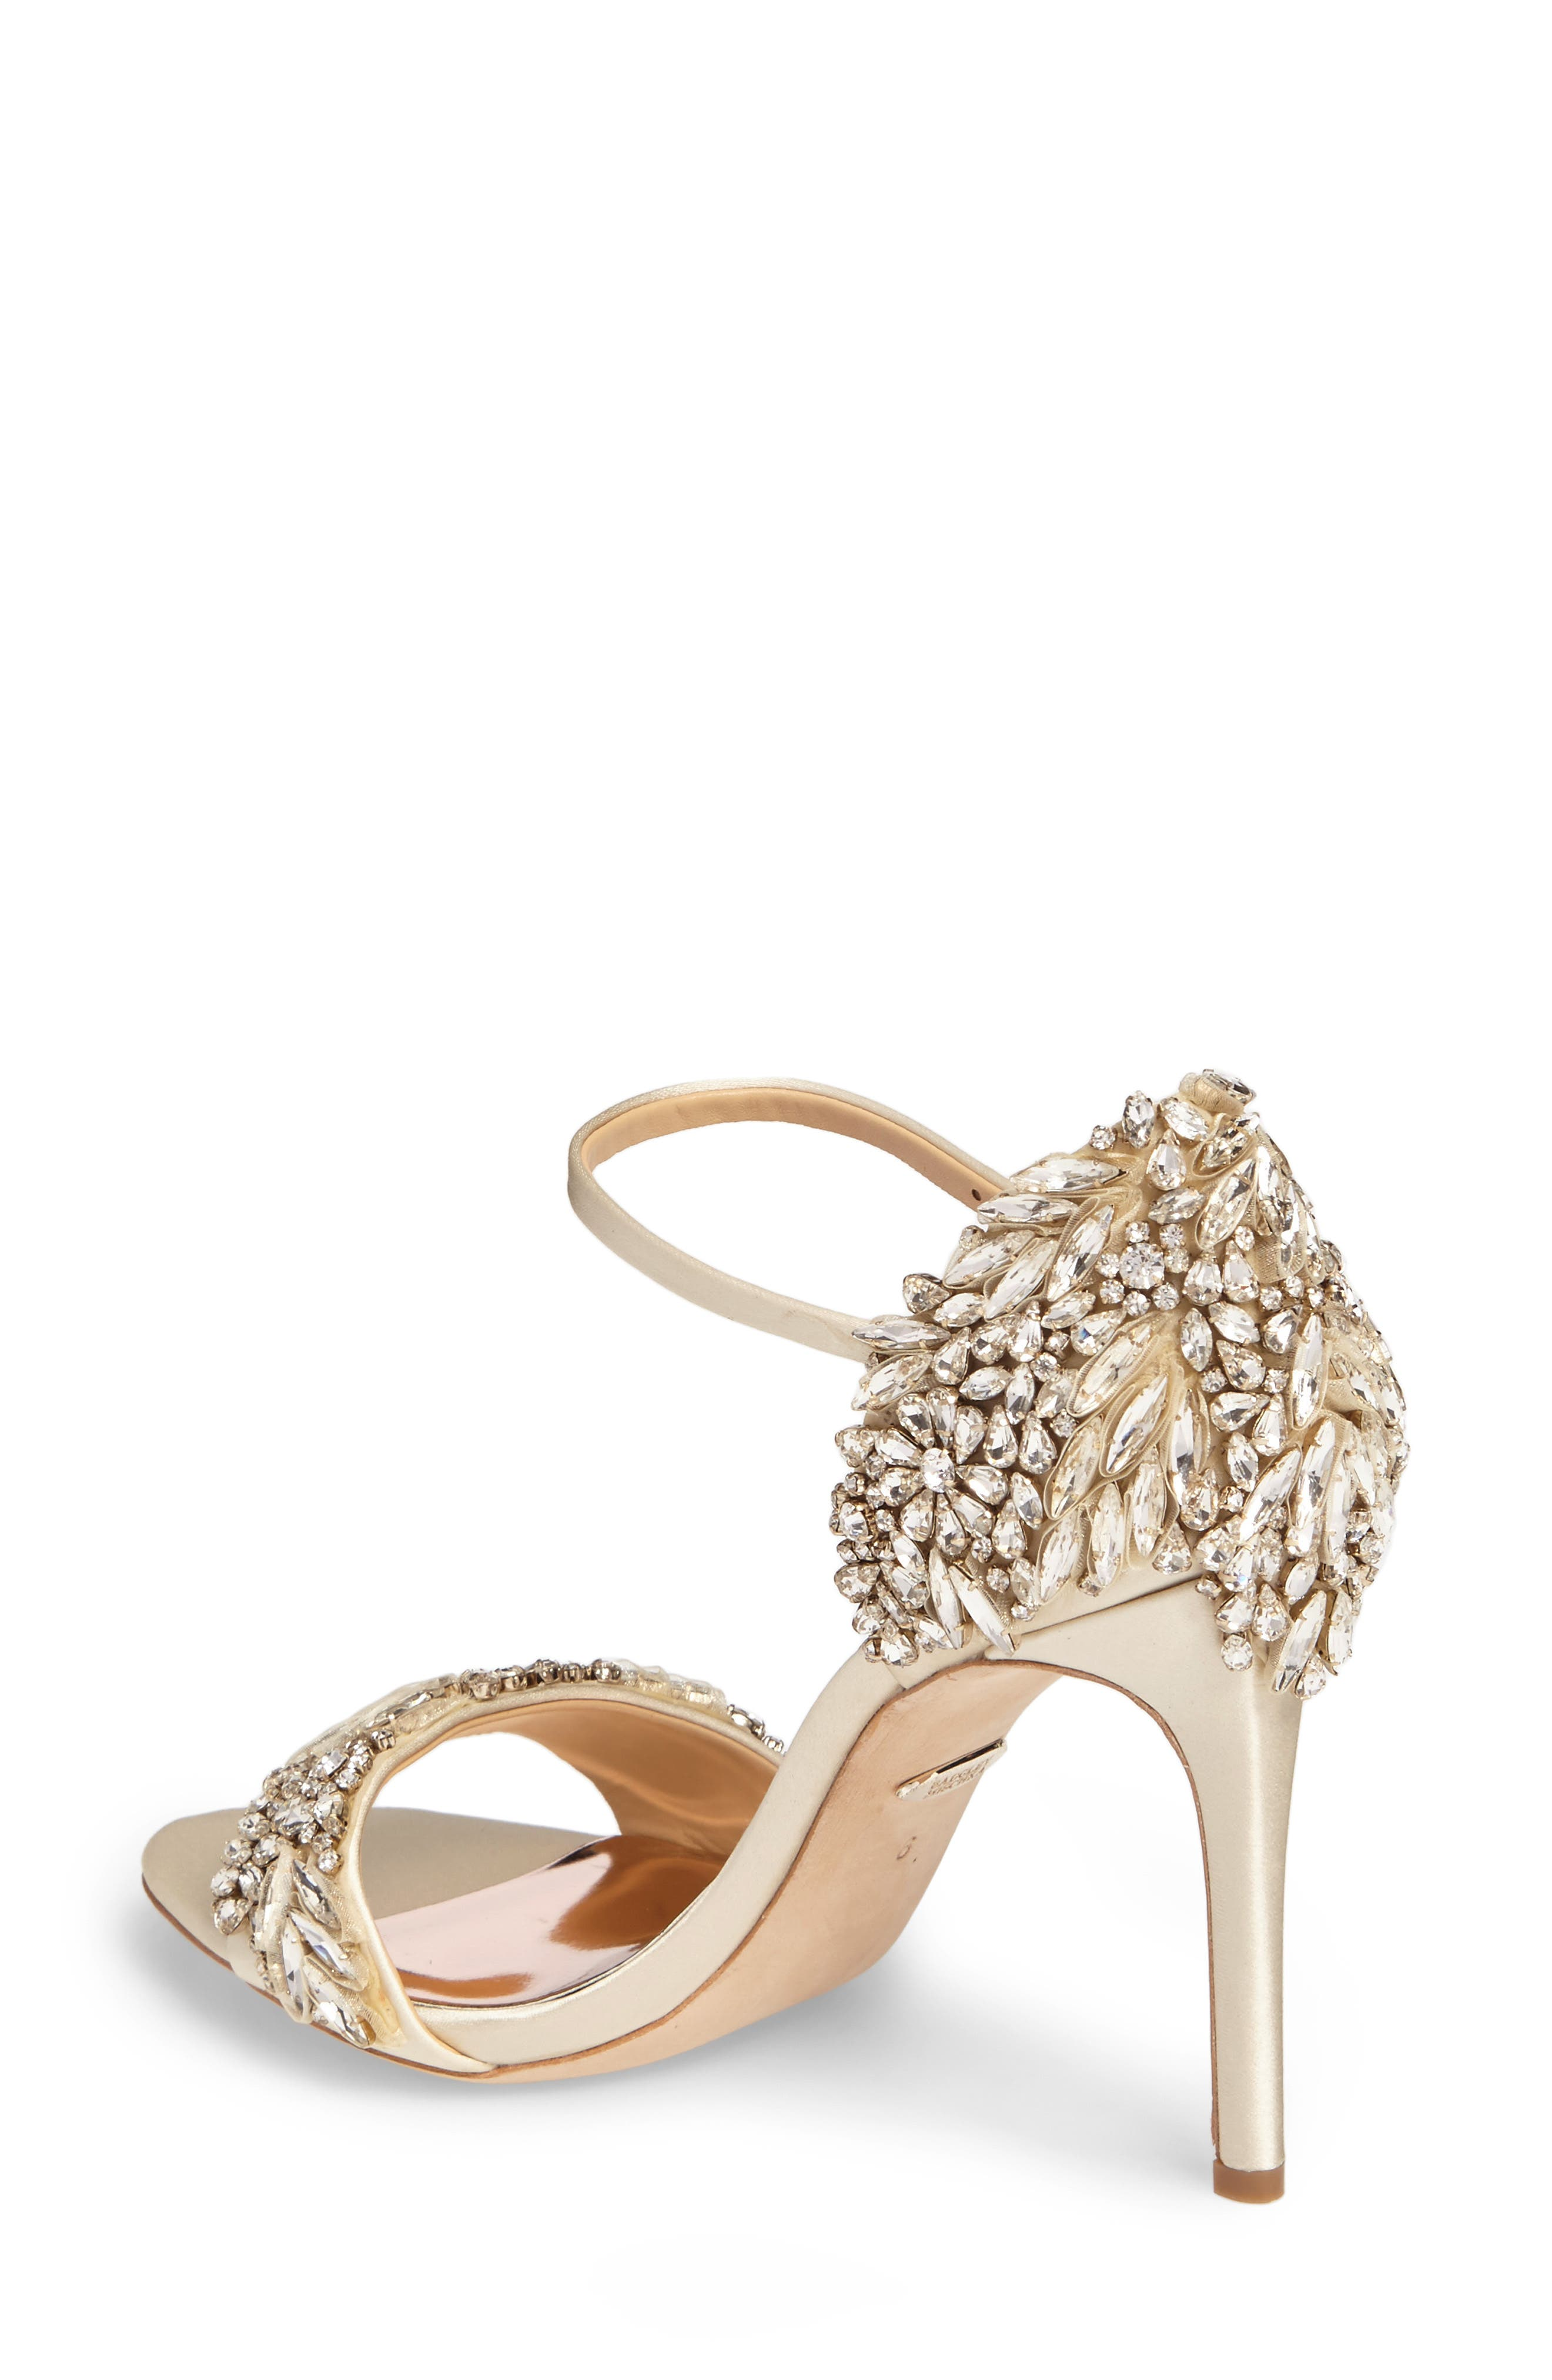 BADGLEY MISCHKA COLLECTION, Badgley Mischka Tampa Ankle Strap Sandal, Alternate thumbnail 2, color, IVORY SATIN